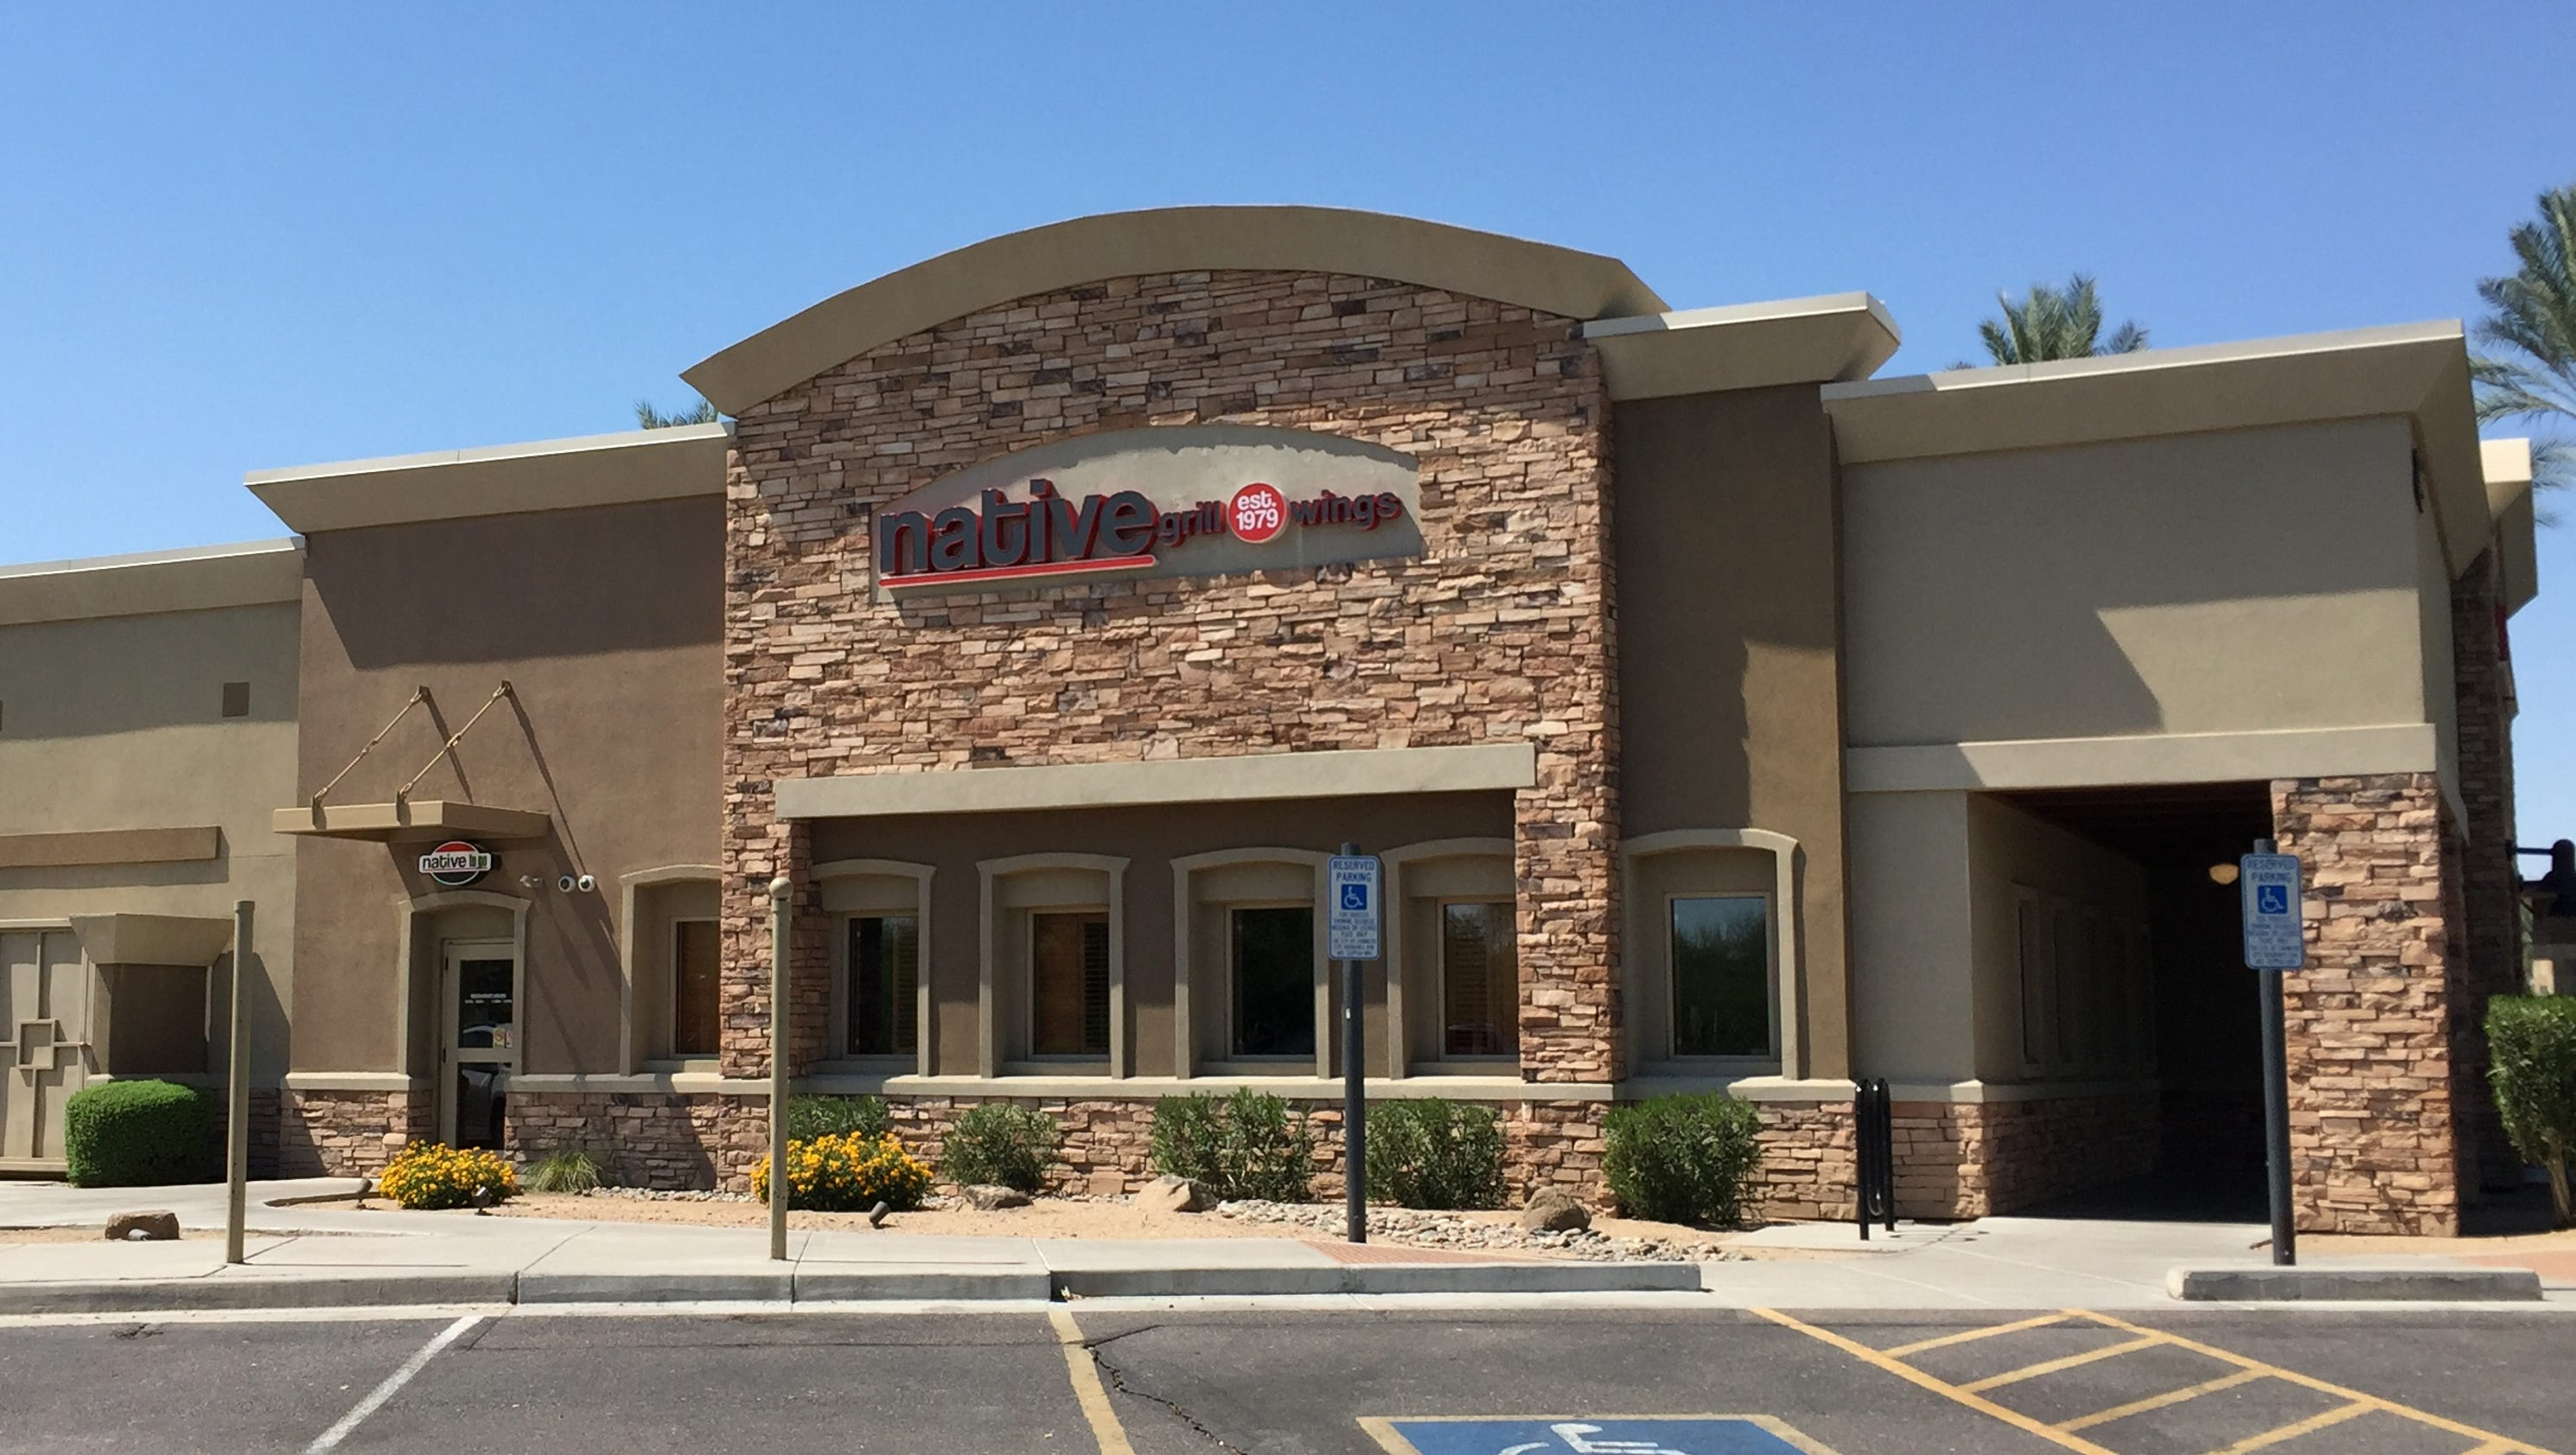 Native grill wings on alma school road in chandler to for Today s interiors phoenix